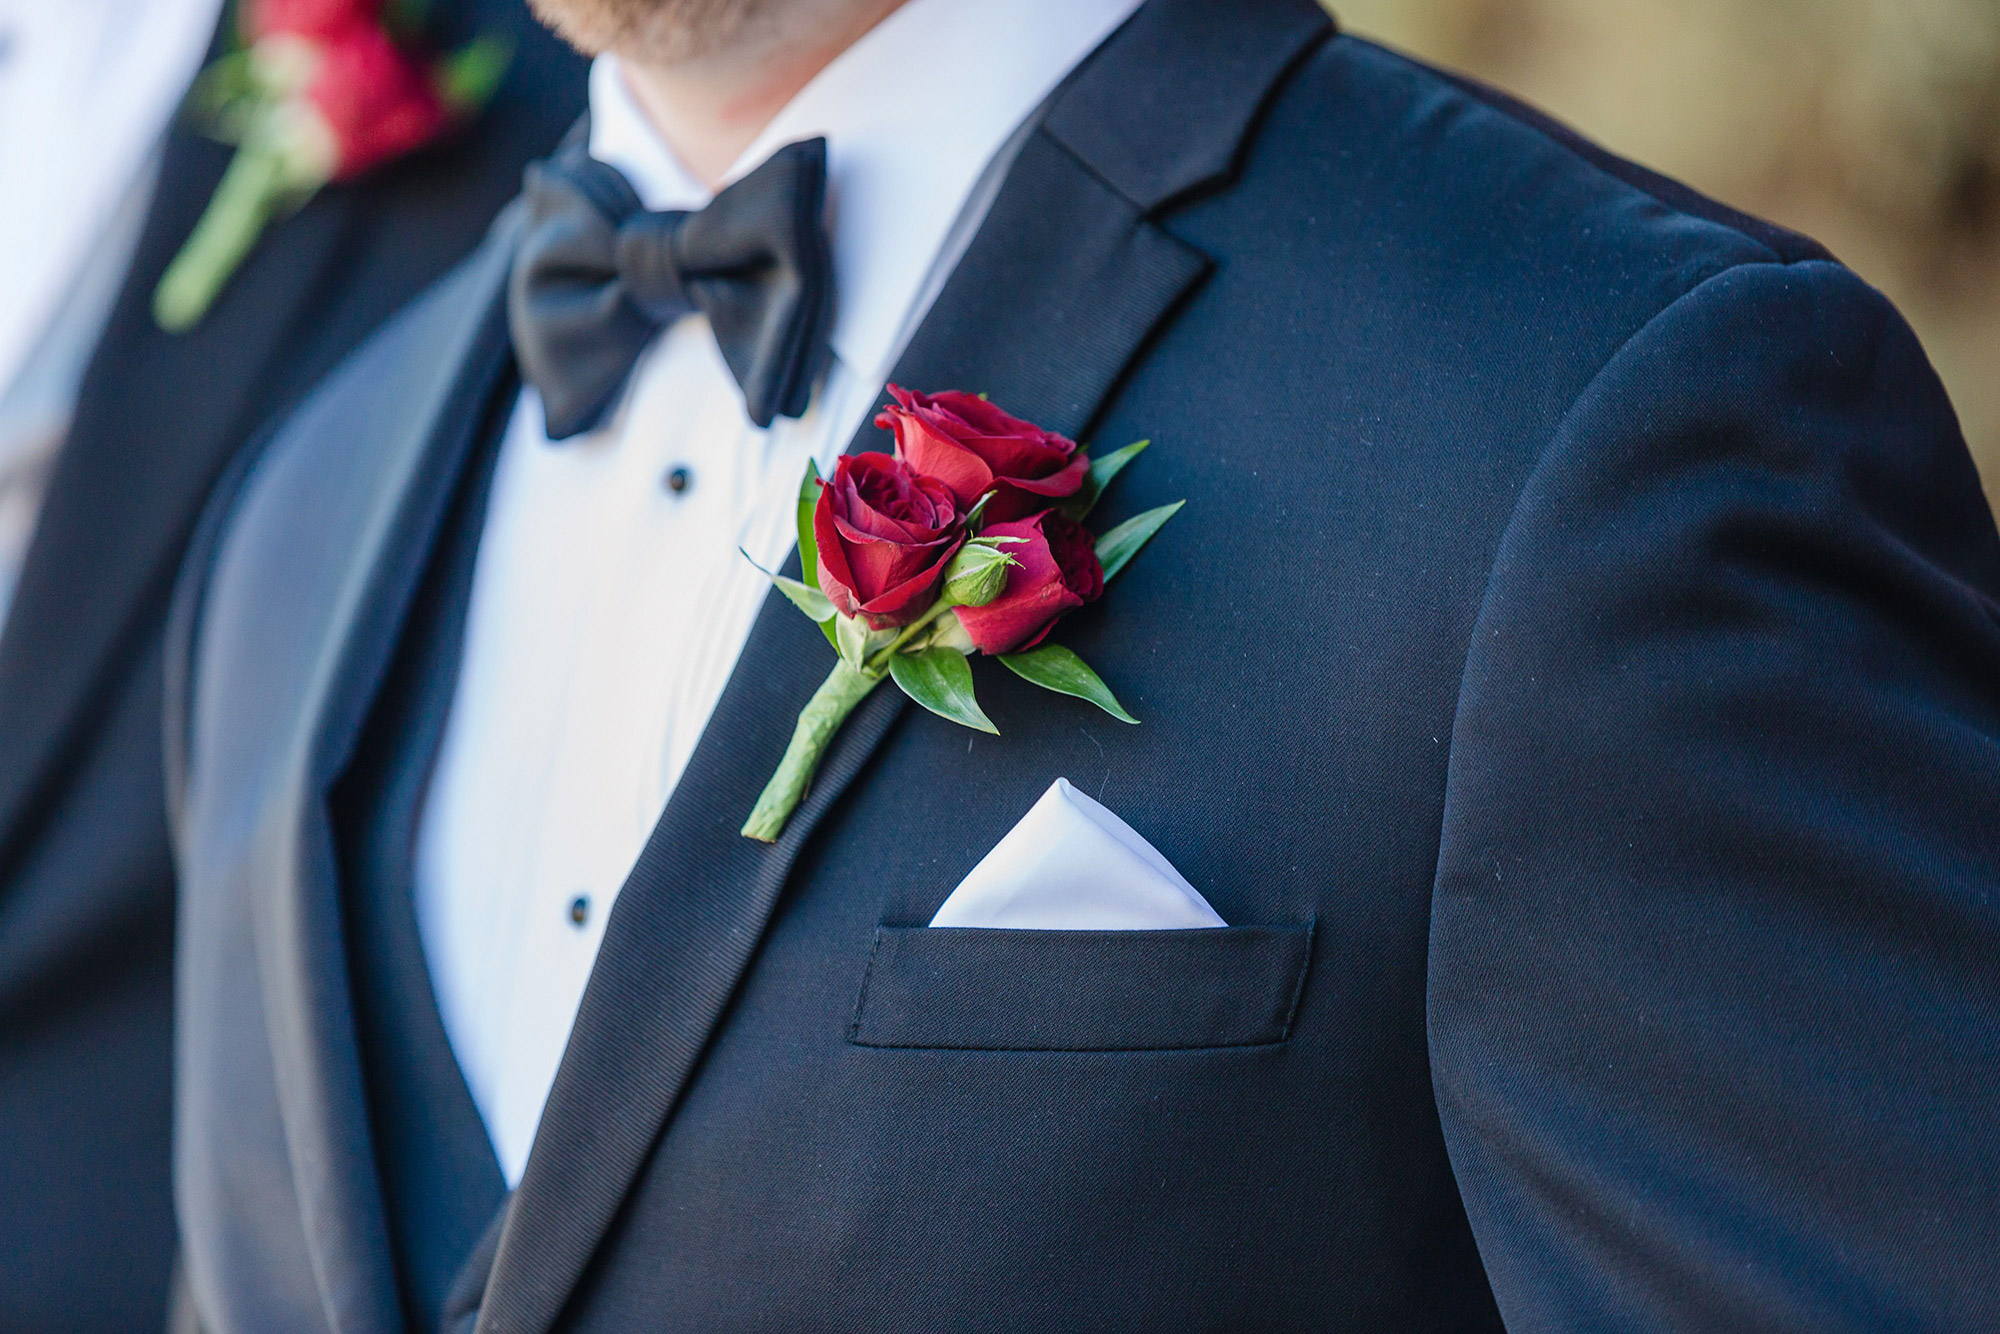 a boutonniere can look classy